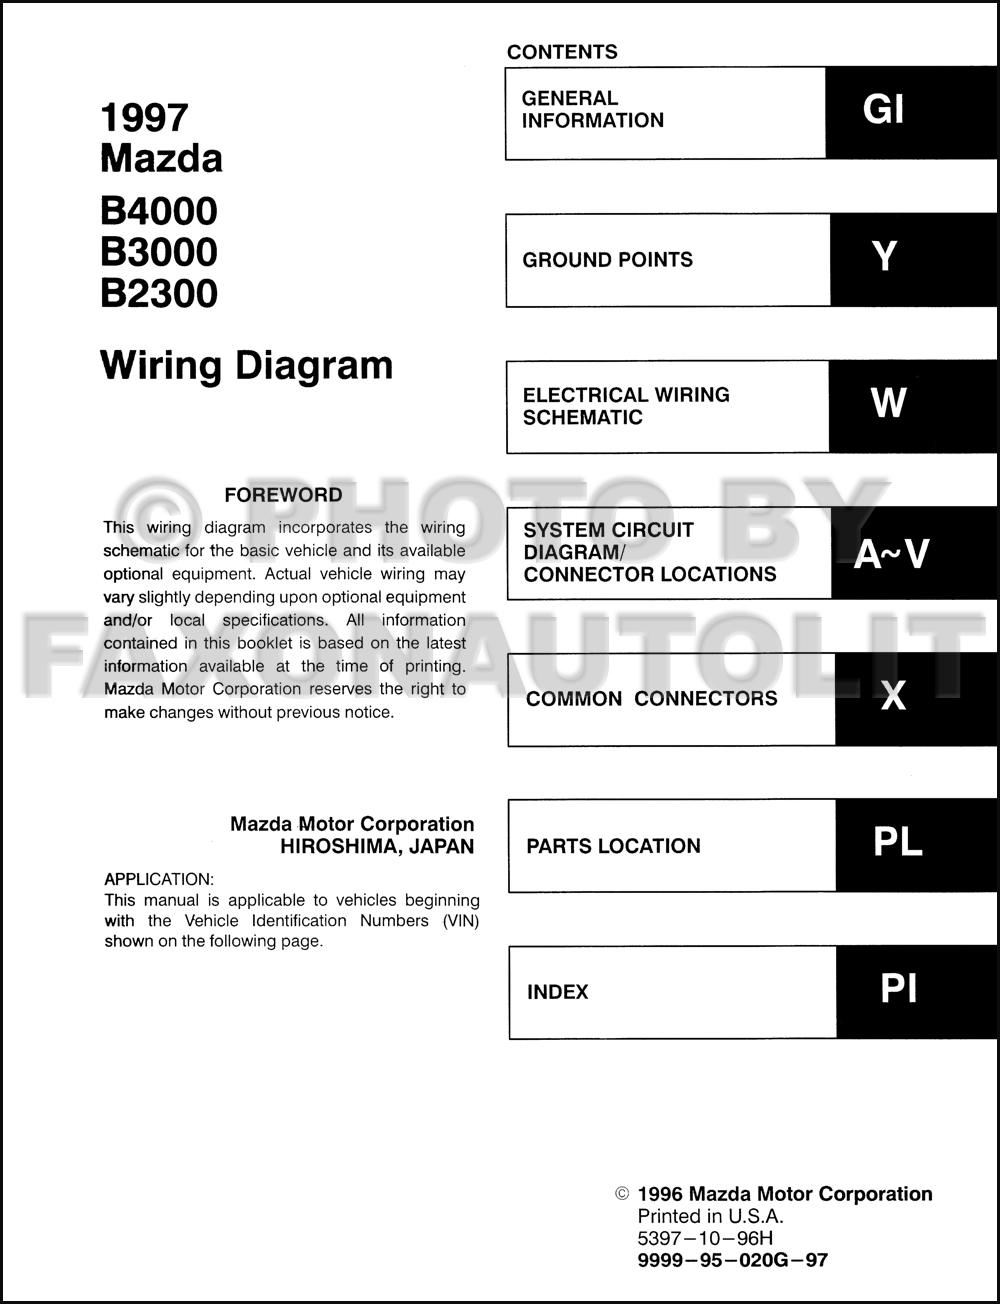 1997 Mazda Wiring Diagram List Of Schematic Circuit Protege Stereo B4000 B3000 B2300 Pickup Truck Manual Original Rh Faxonautoliterature Com Miata